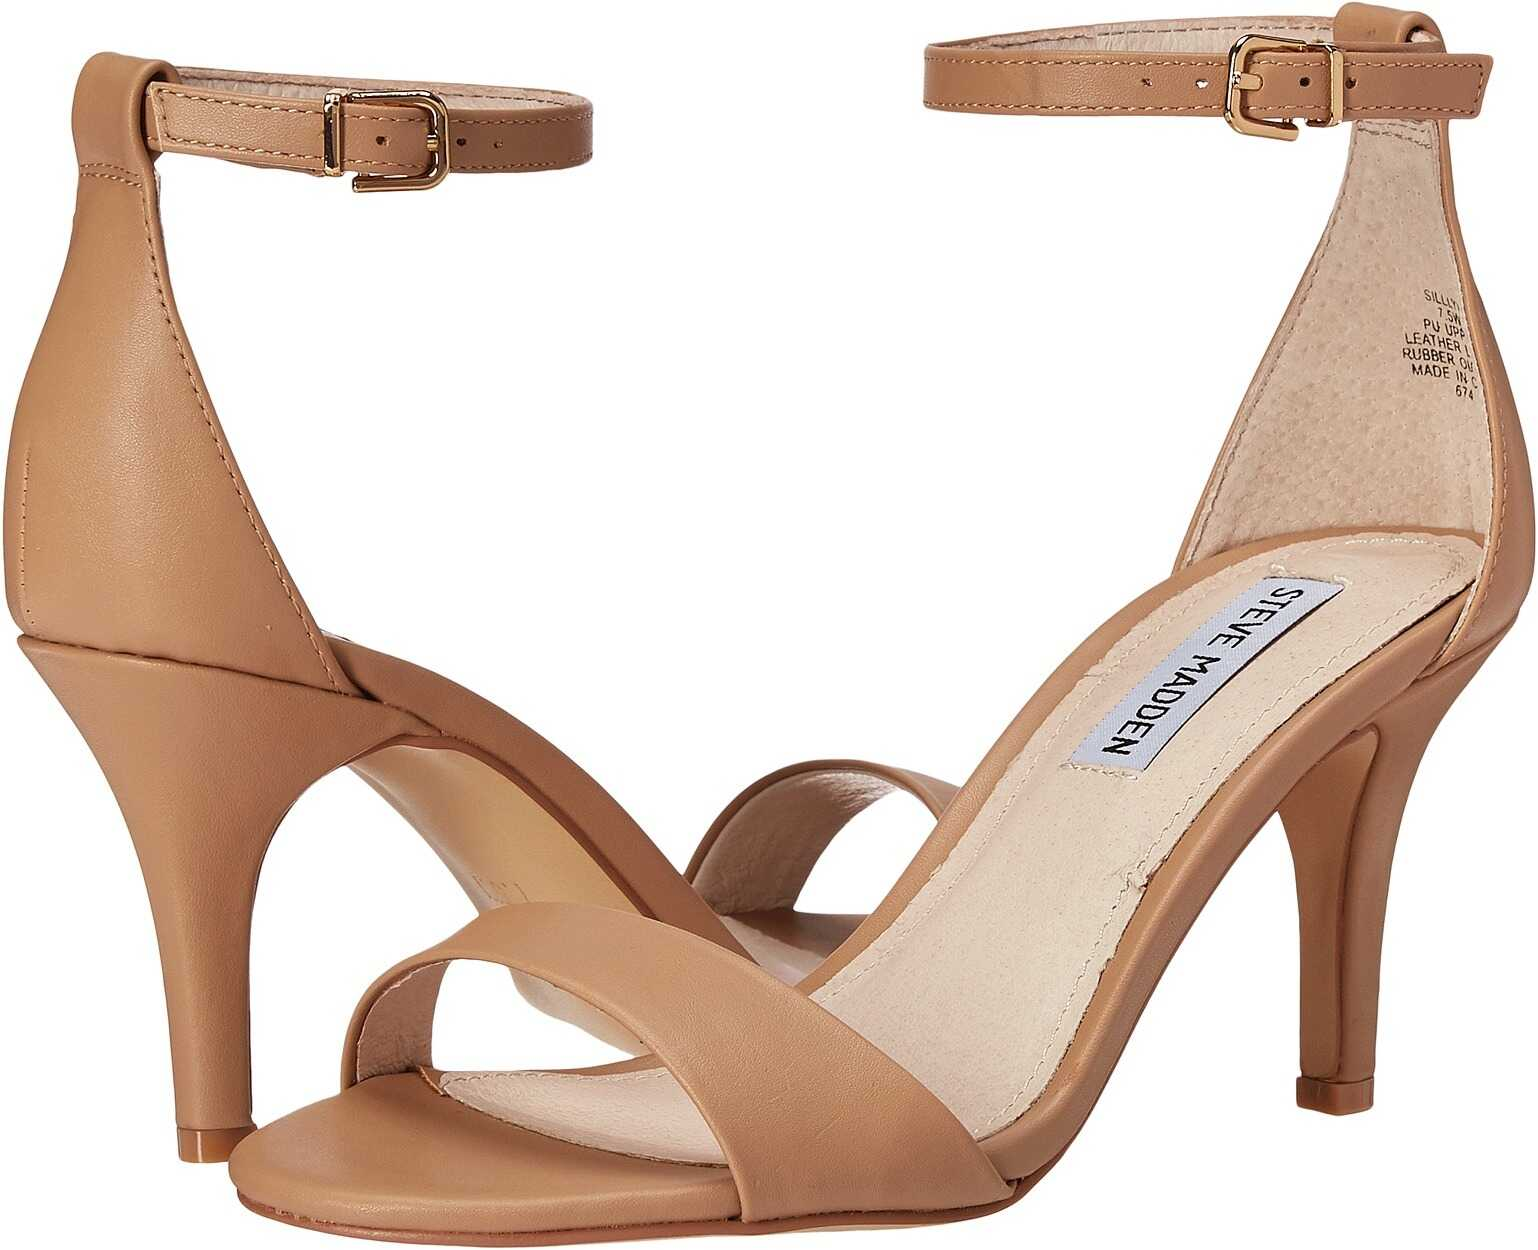 Steve Madden Exclusive - Sillly Sandal Natural